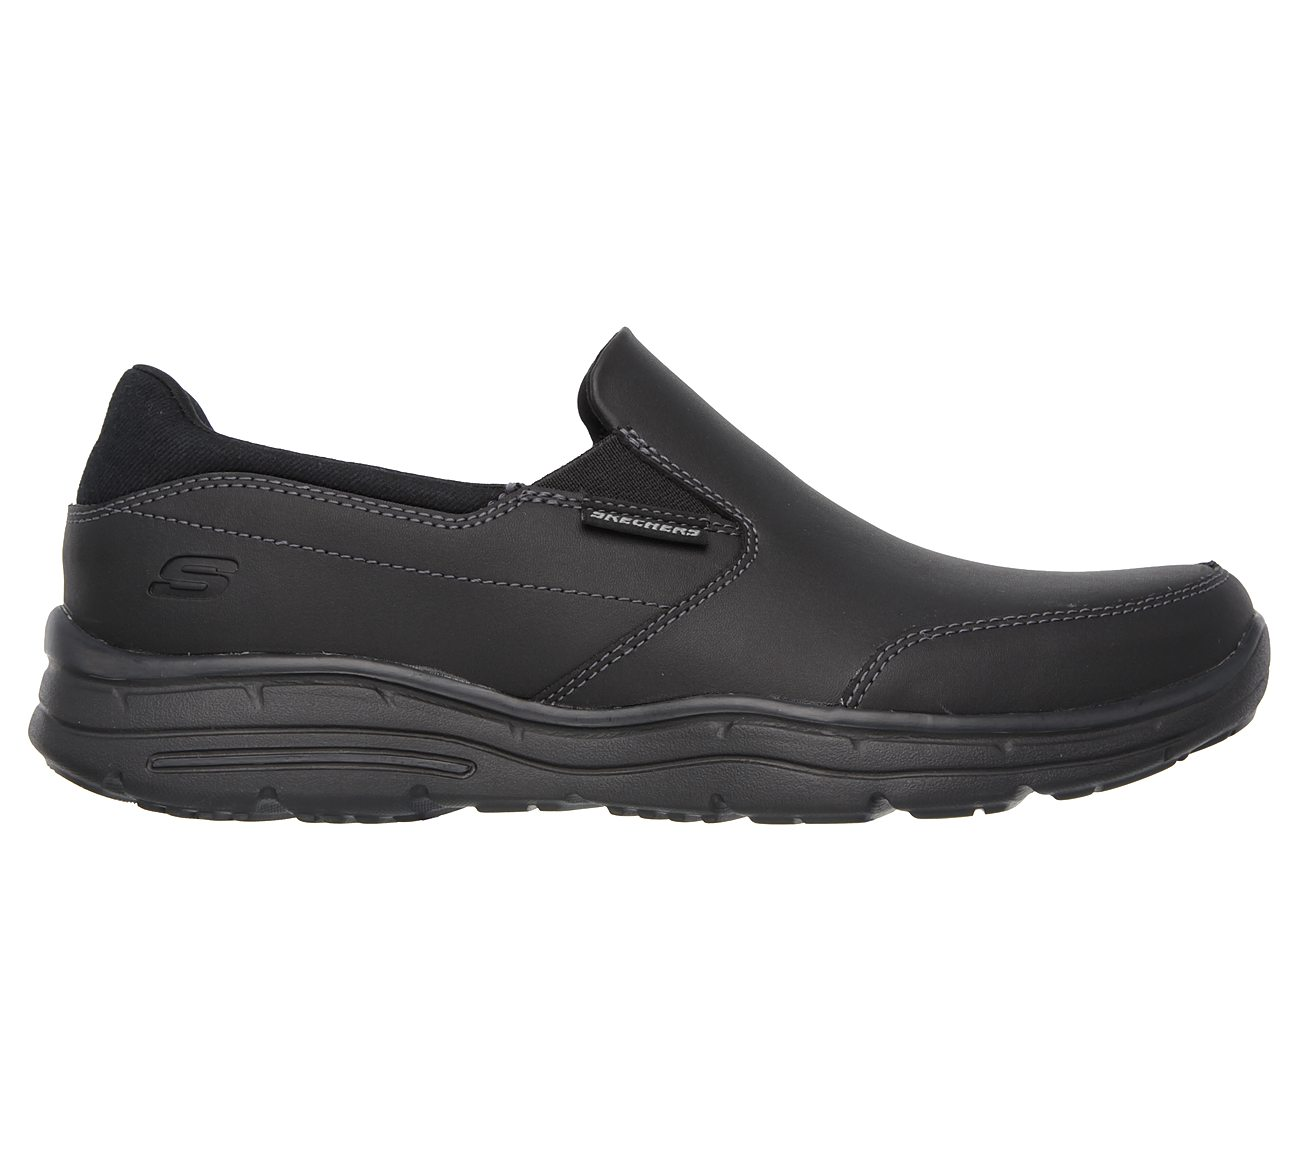 92e9cfcf5b1 Buy SKECHERS Relaxed Fit  Glides - Calculous SKECHERS Relaxed Fit ...